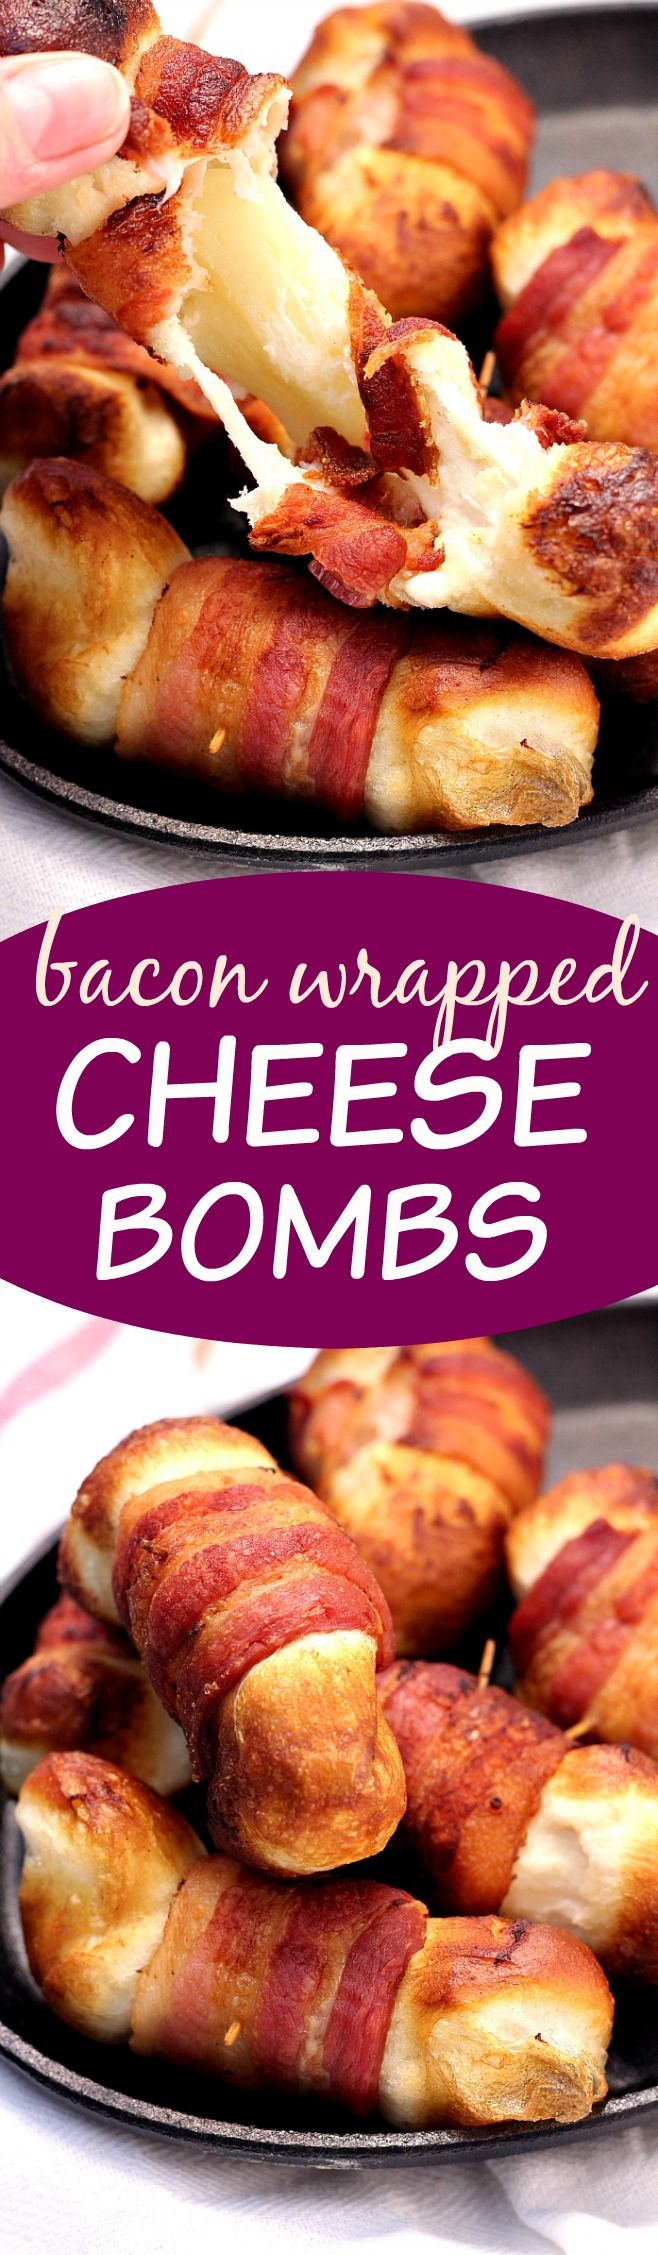 Bacon Wrapped Cheese Bombs - the appetizer that will make the party! Cheese filled biscuit bombs wrapped in bacon and fried. Do it!